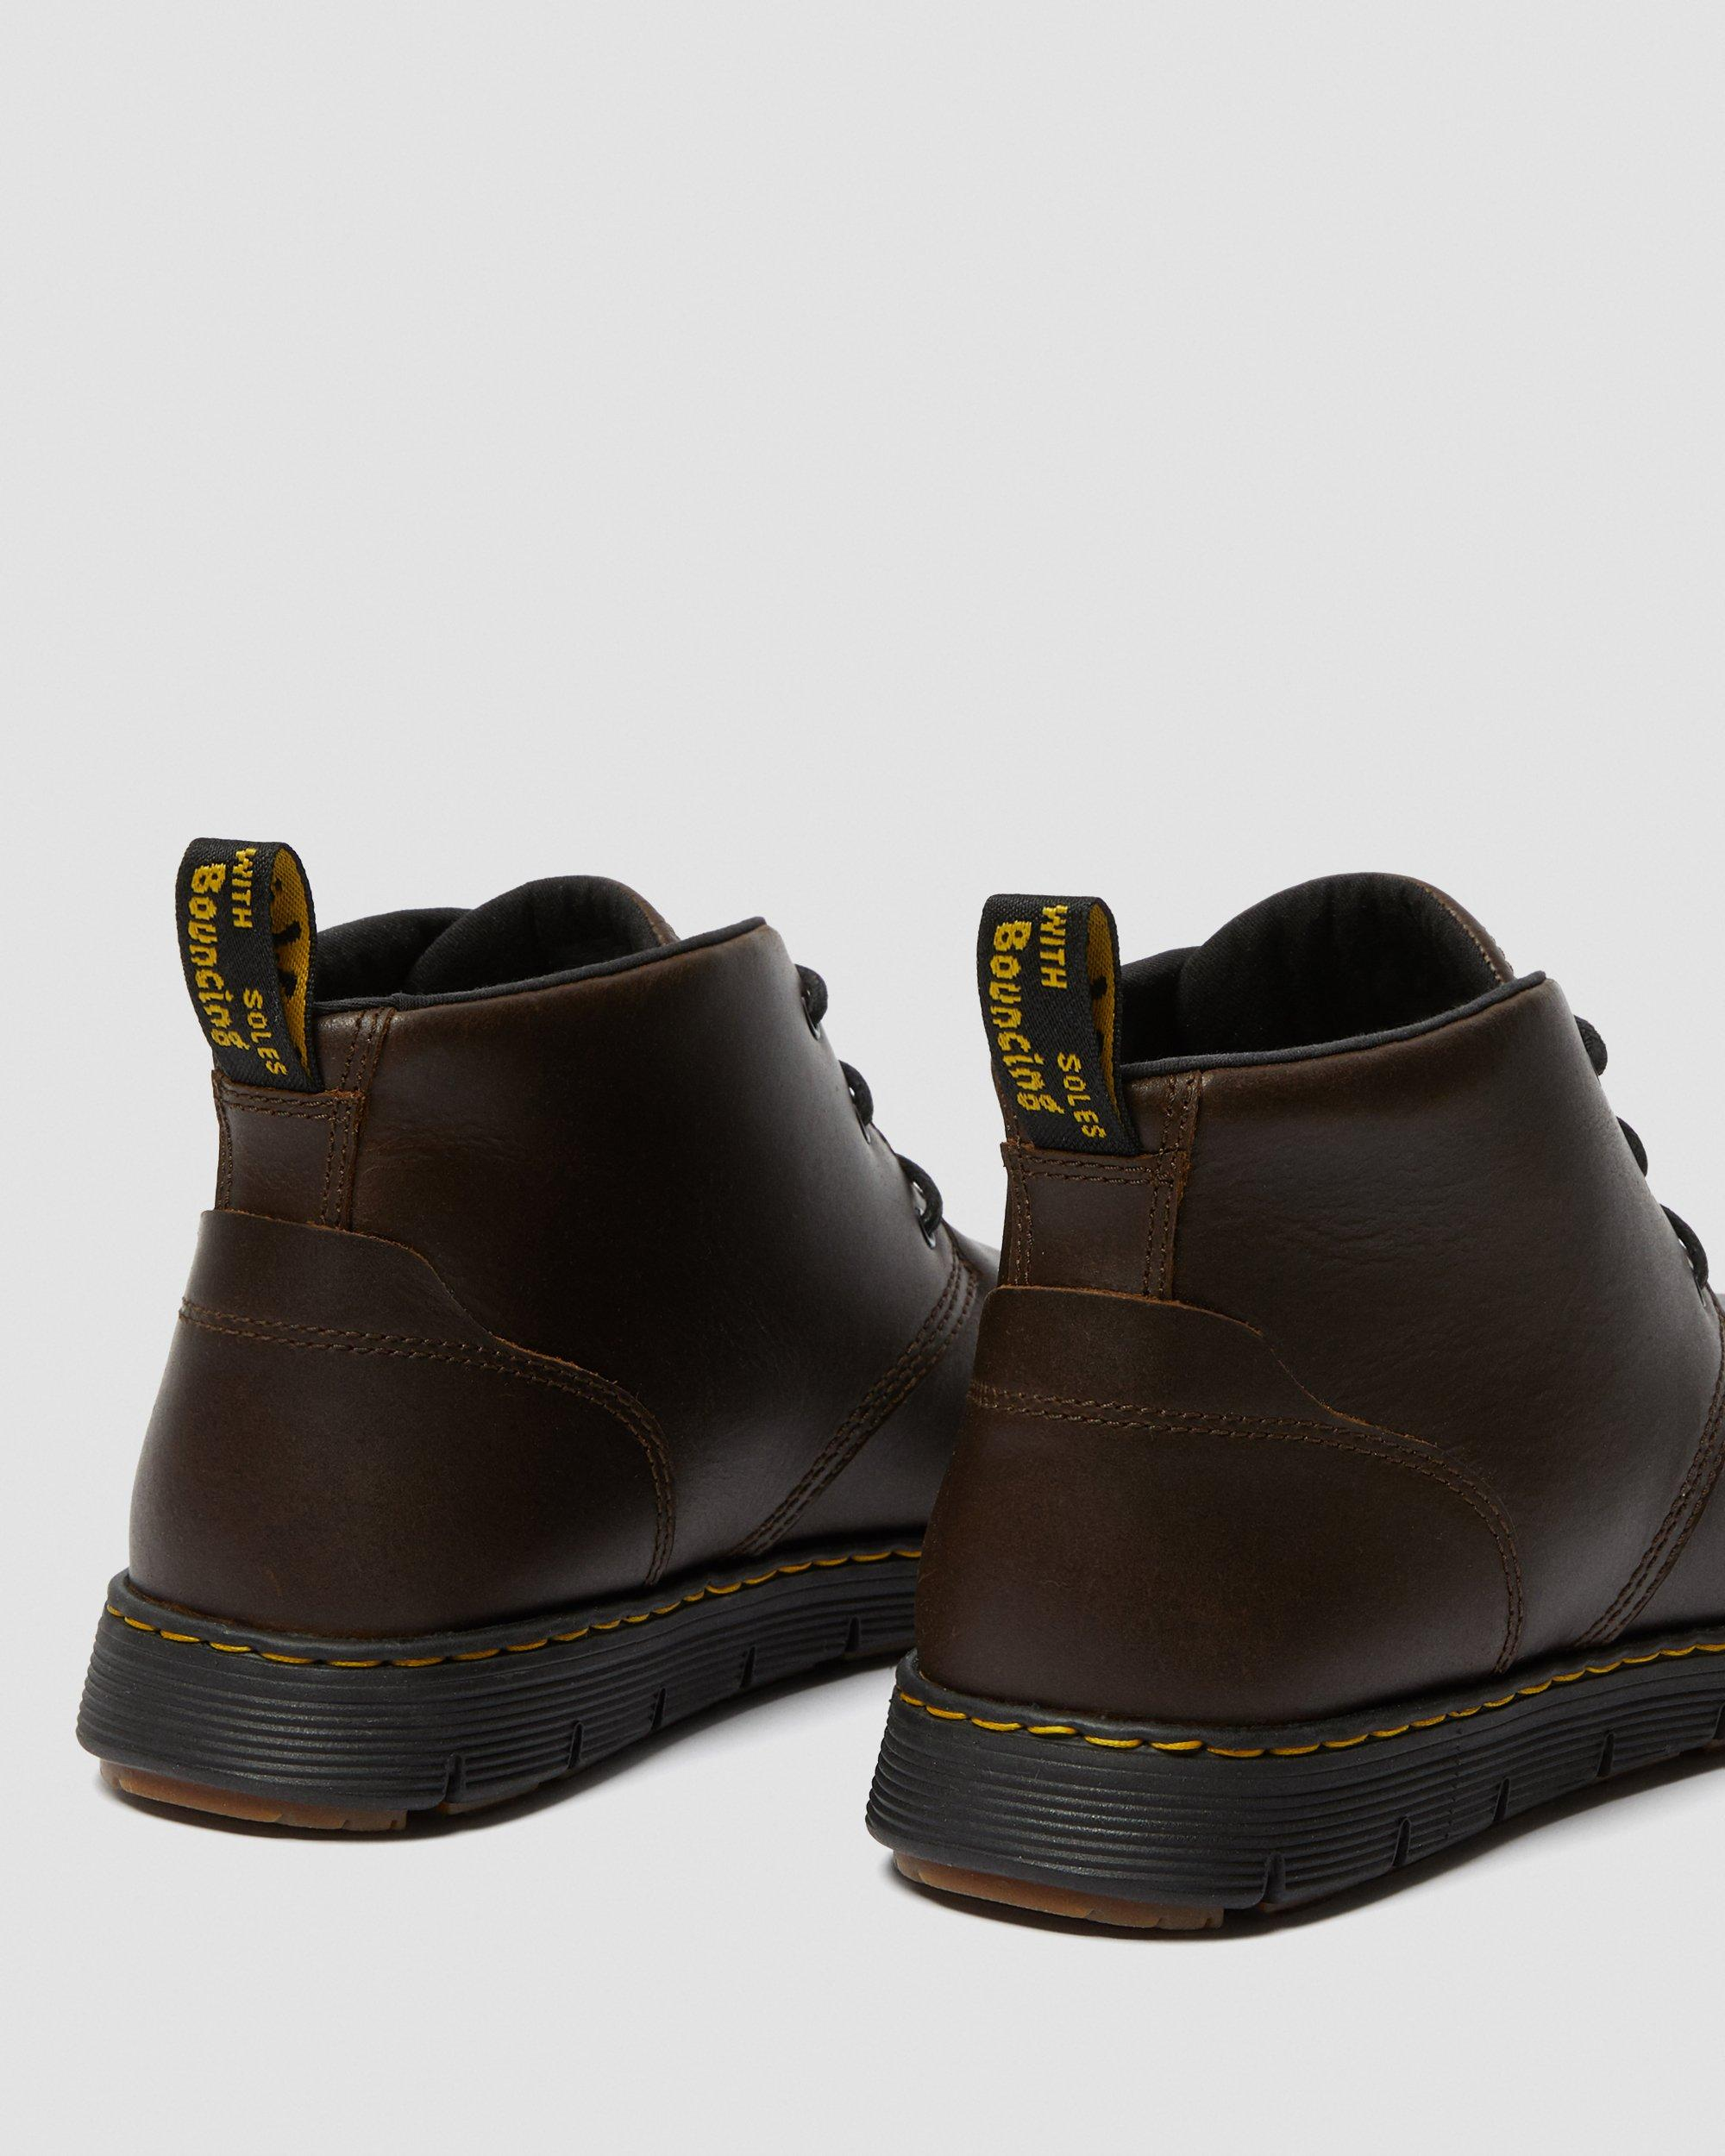 LEATHER CHUKKA BOOTS   Dr. Martens